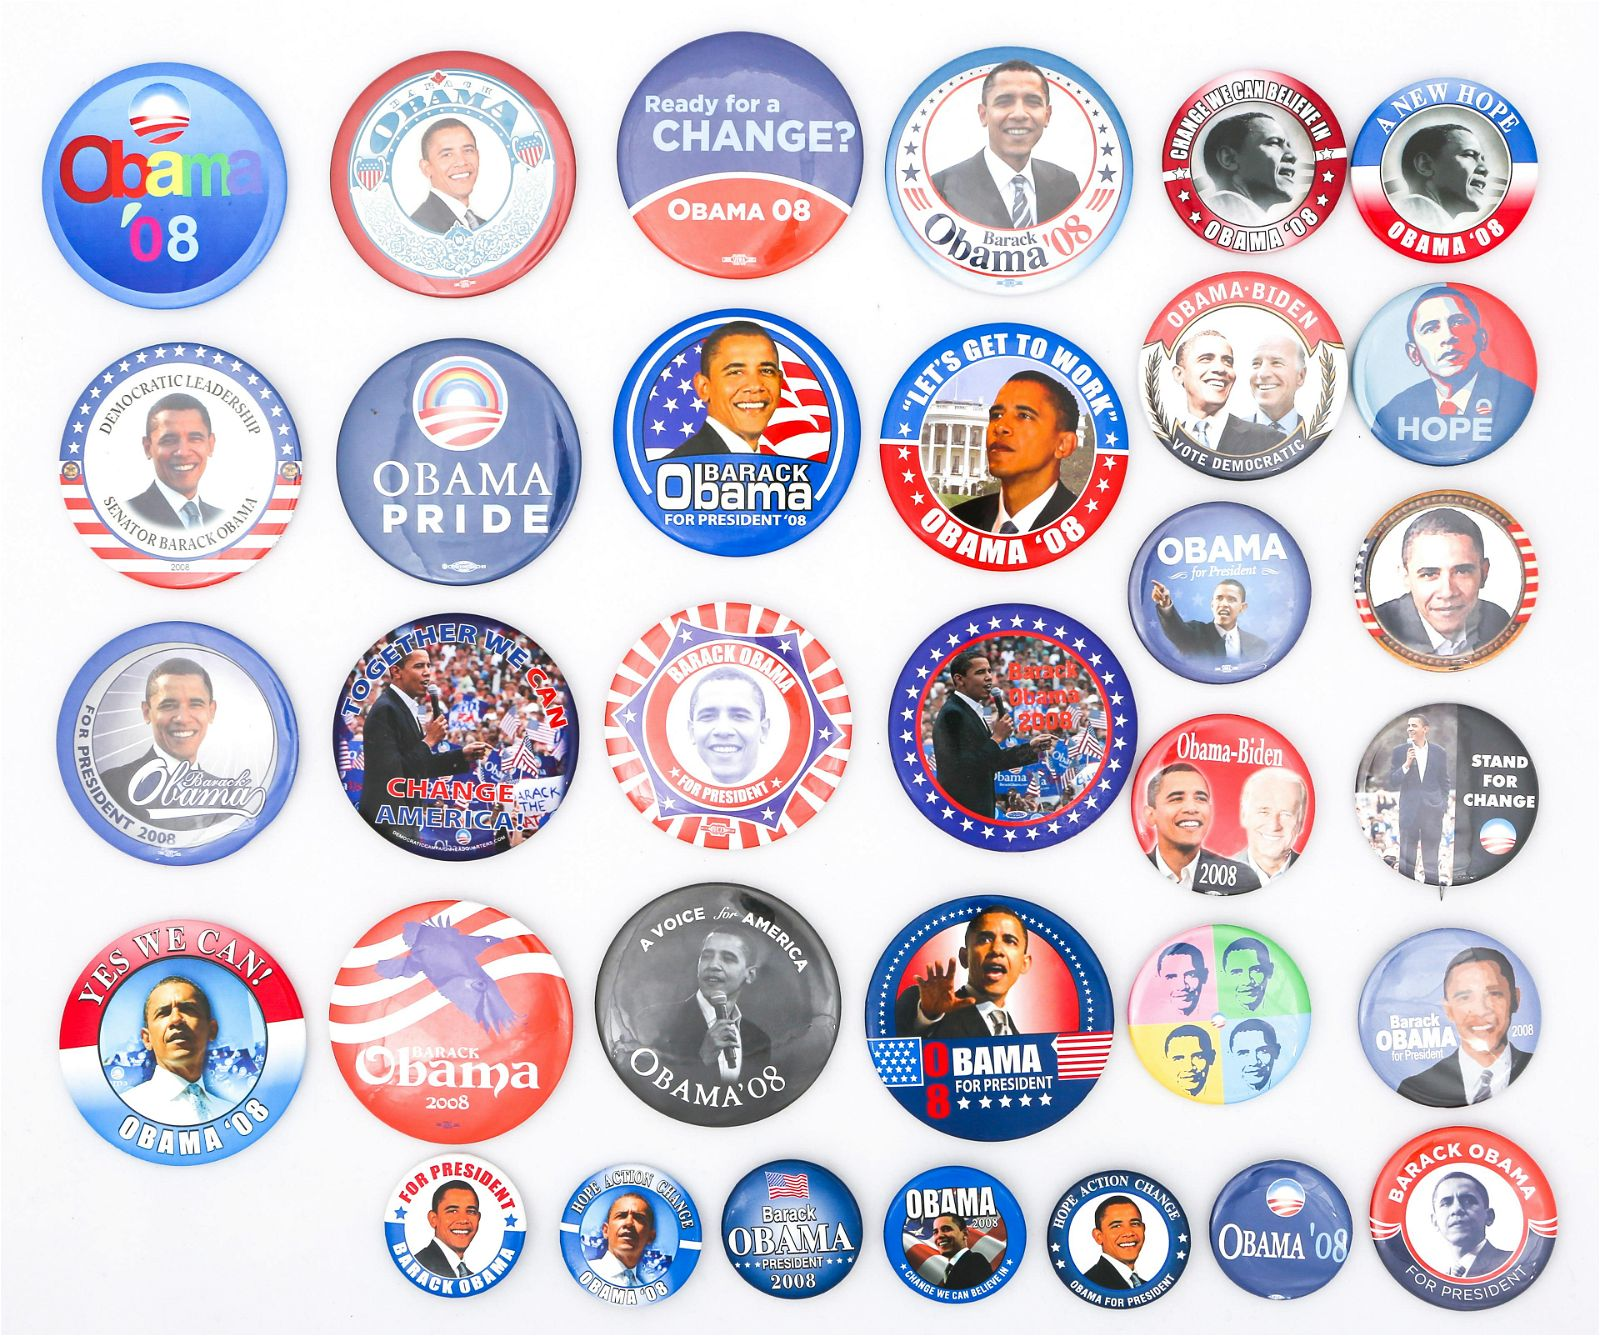 PRESIDENTIAL POLITICAL CAMPAIGN BUTTONS - OBAMA BIDEN